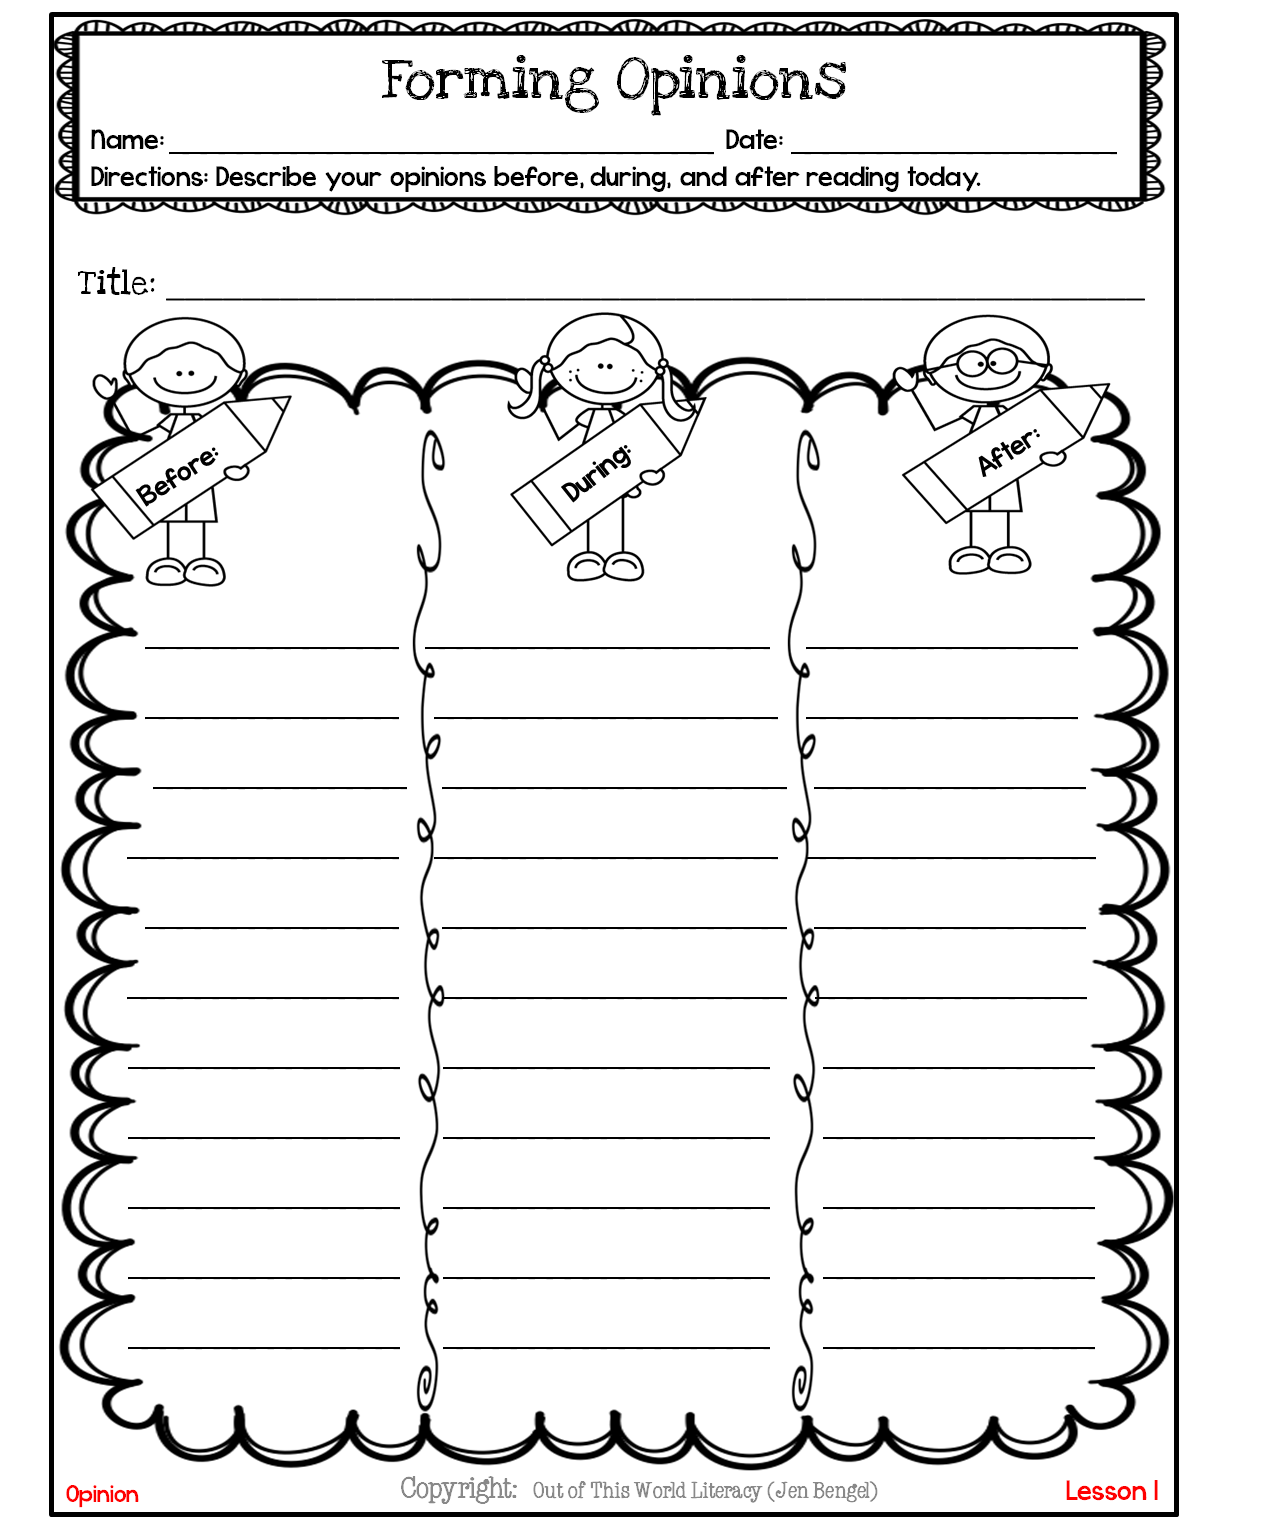 http://www.teacherspayteachers.com/Product/FreebieForming-Opinions-Before-During-and-After-Reading-1127165